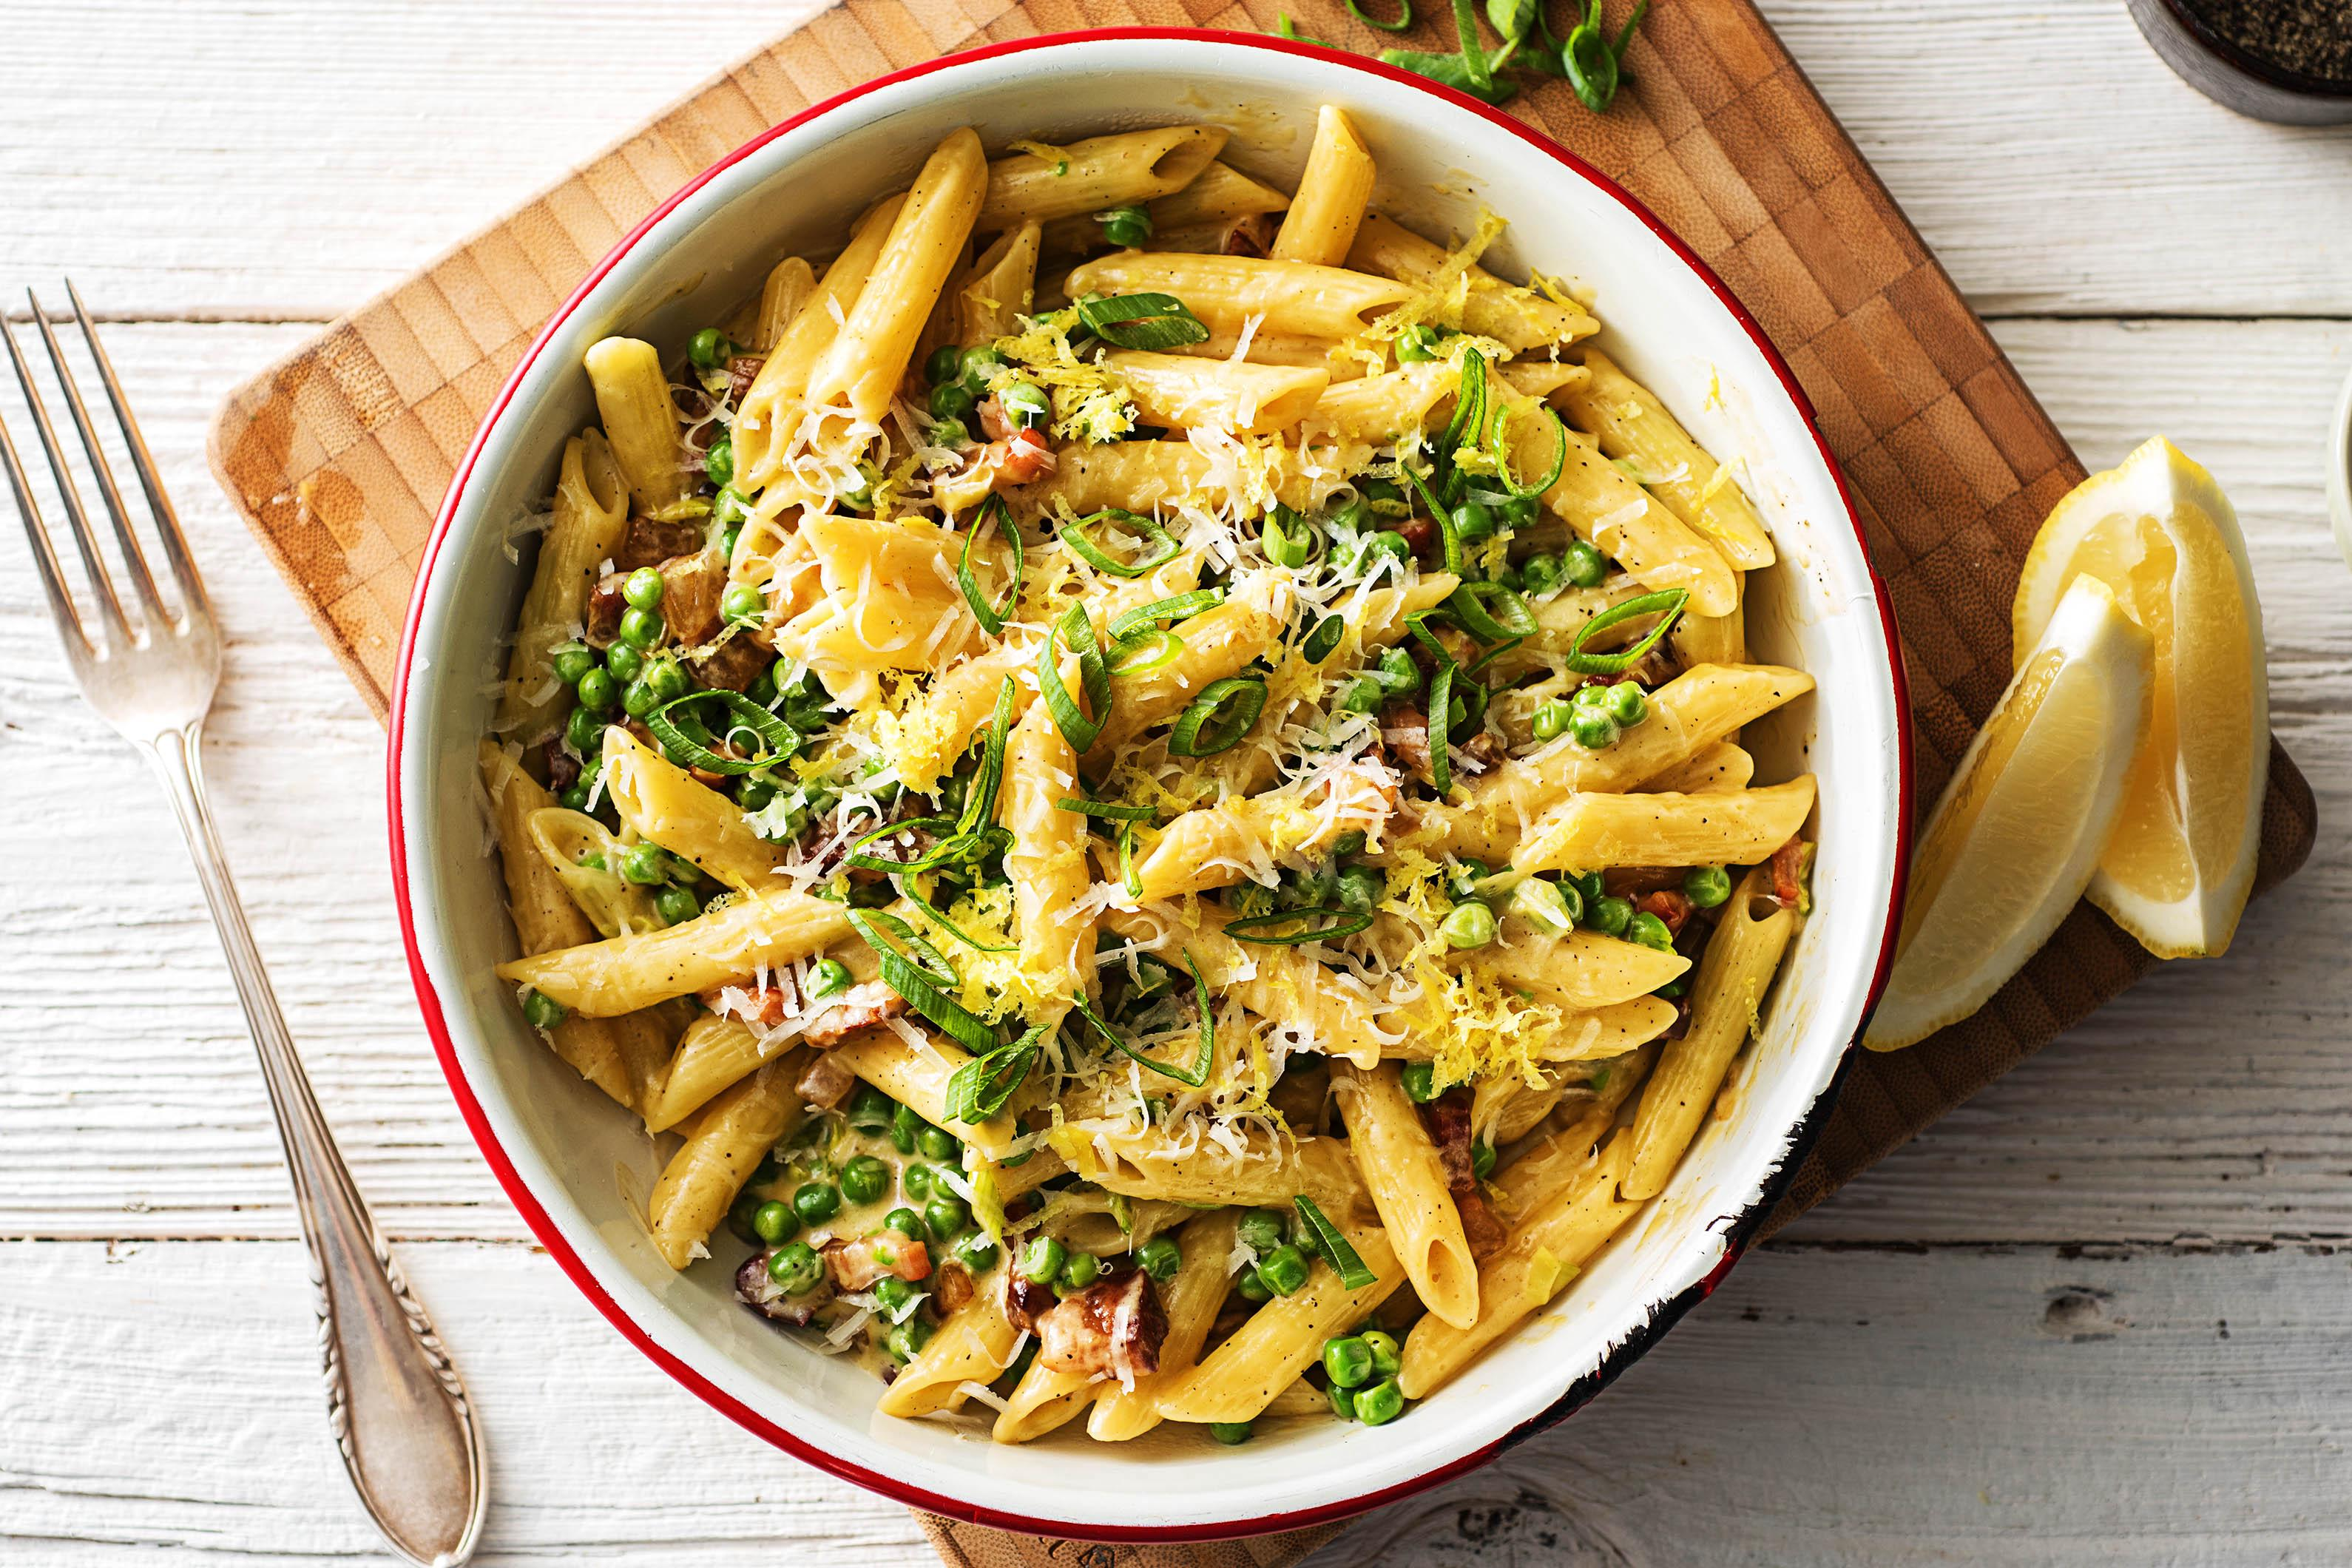 carbonara-style-penne-bbe37697